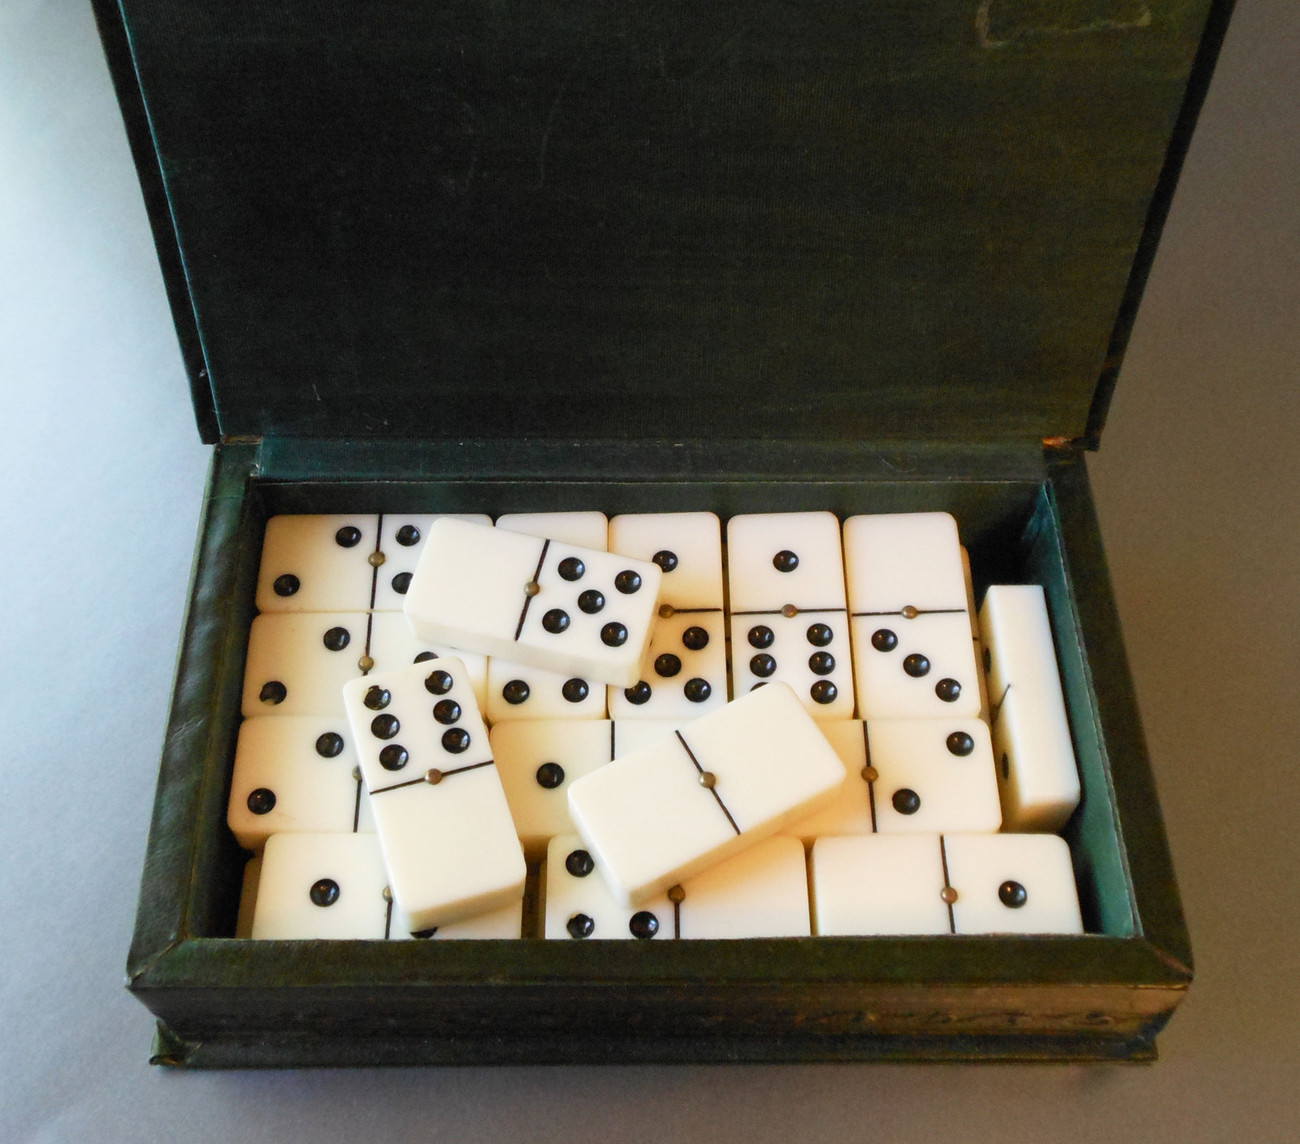 SET OF DOUBLE-SIX DOMINOES WITH METAL SPINNERS & DECORATIVE BOX - BAKELITE?